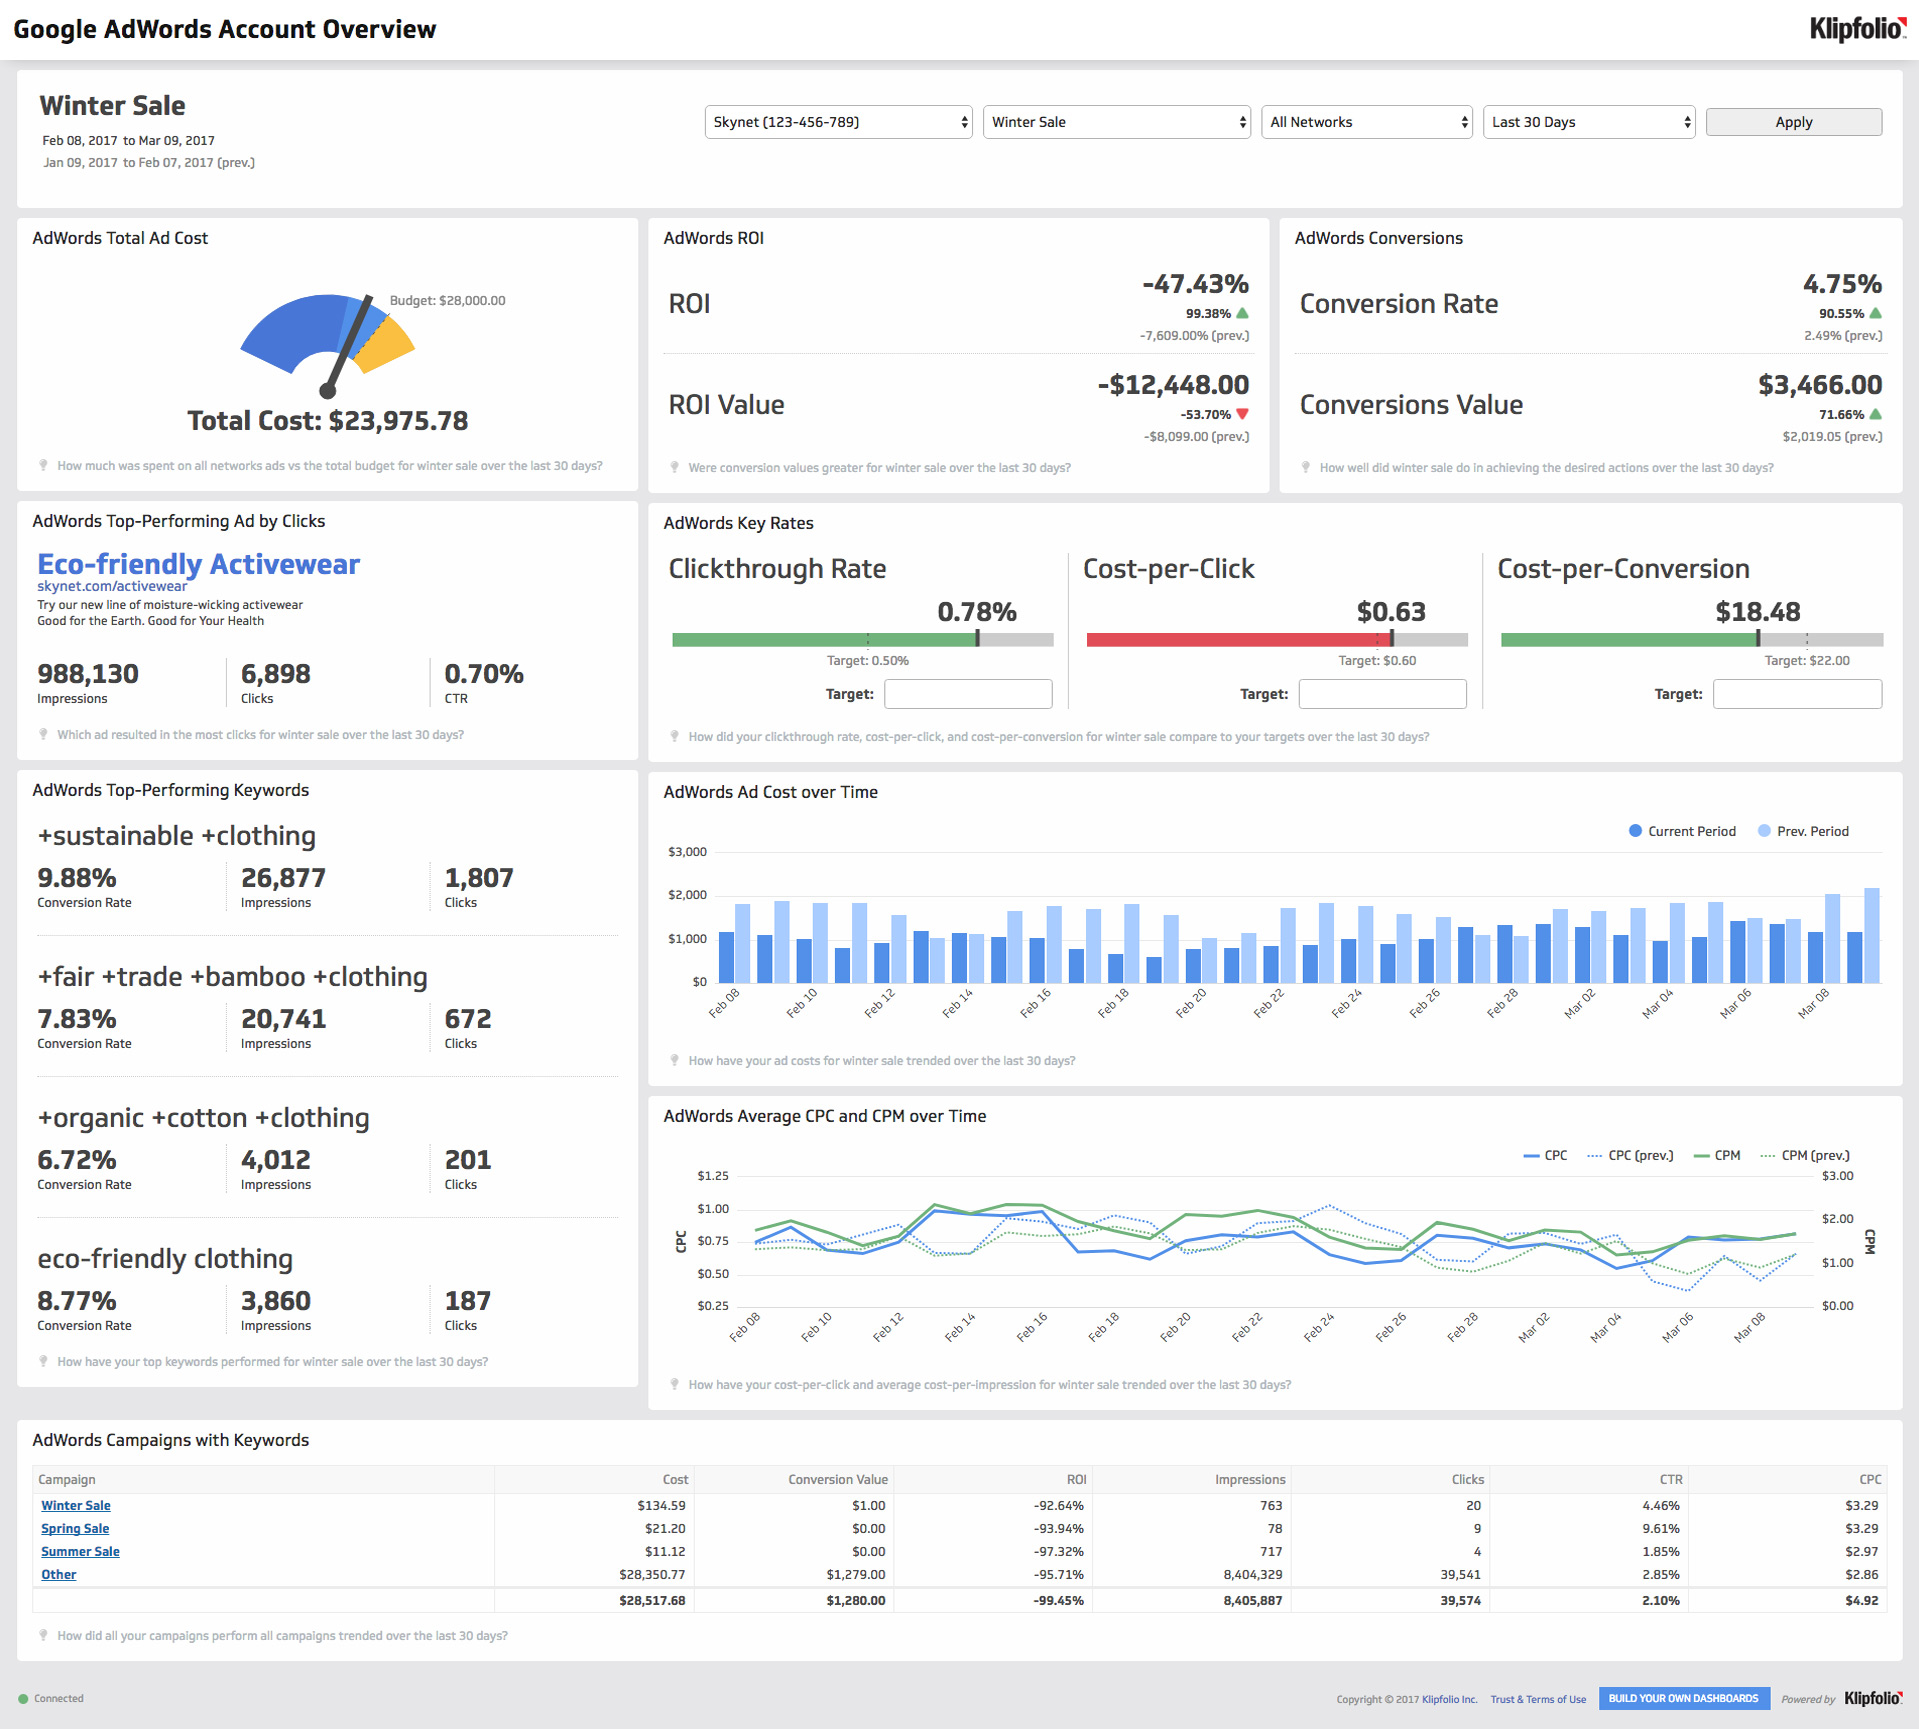 klipfolio - google adwords account overview